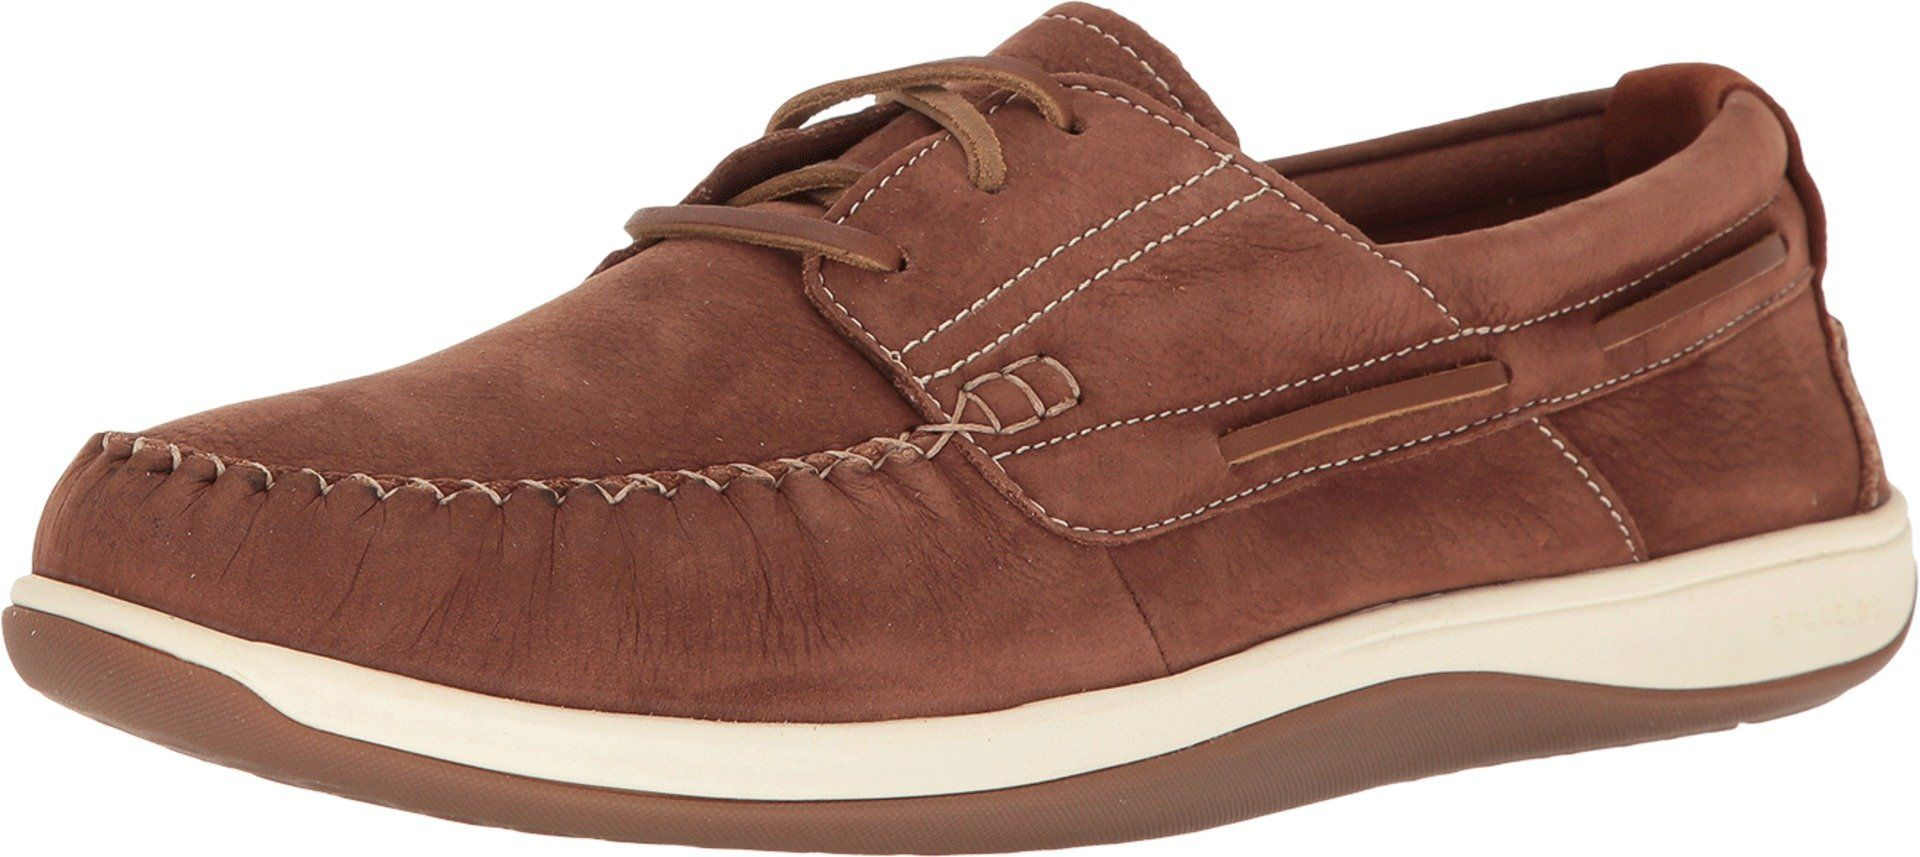 89755b886ee Cole Haan Men s Boothbay Boat Shoe Harvest Brown Nubuck Oxford ...